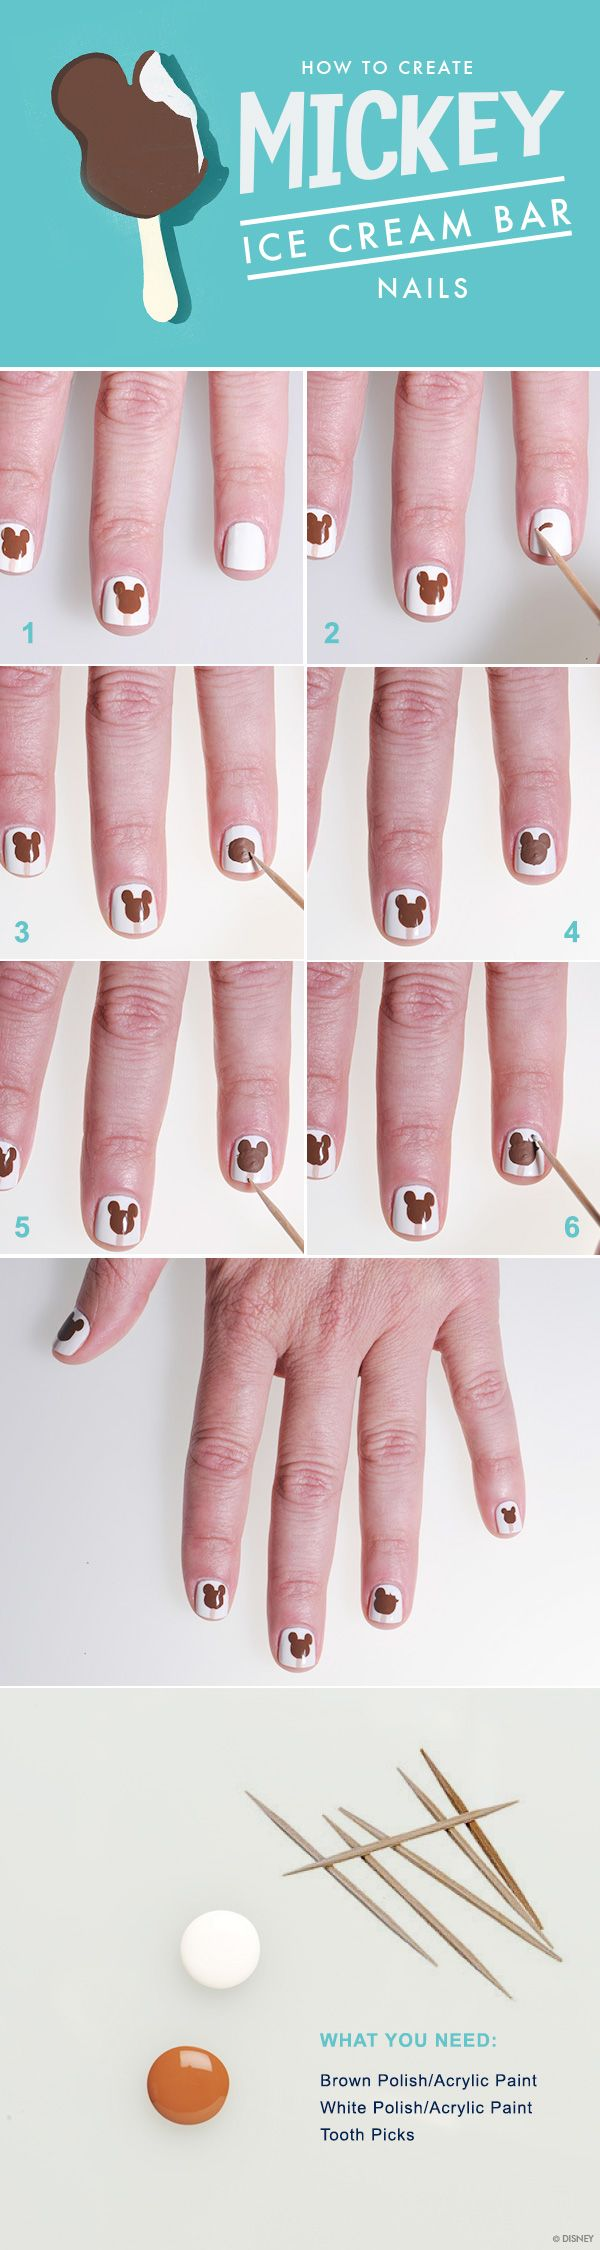 How to Create Mickey Ice Cream Bar Nails #WaltDisneyWorld